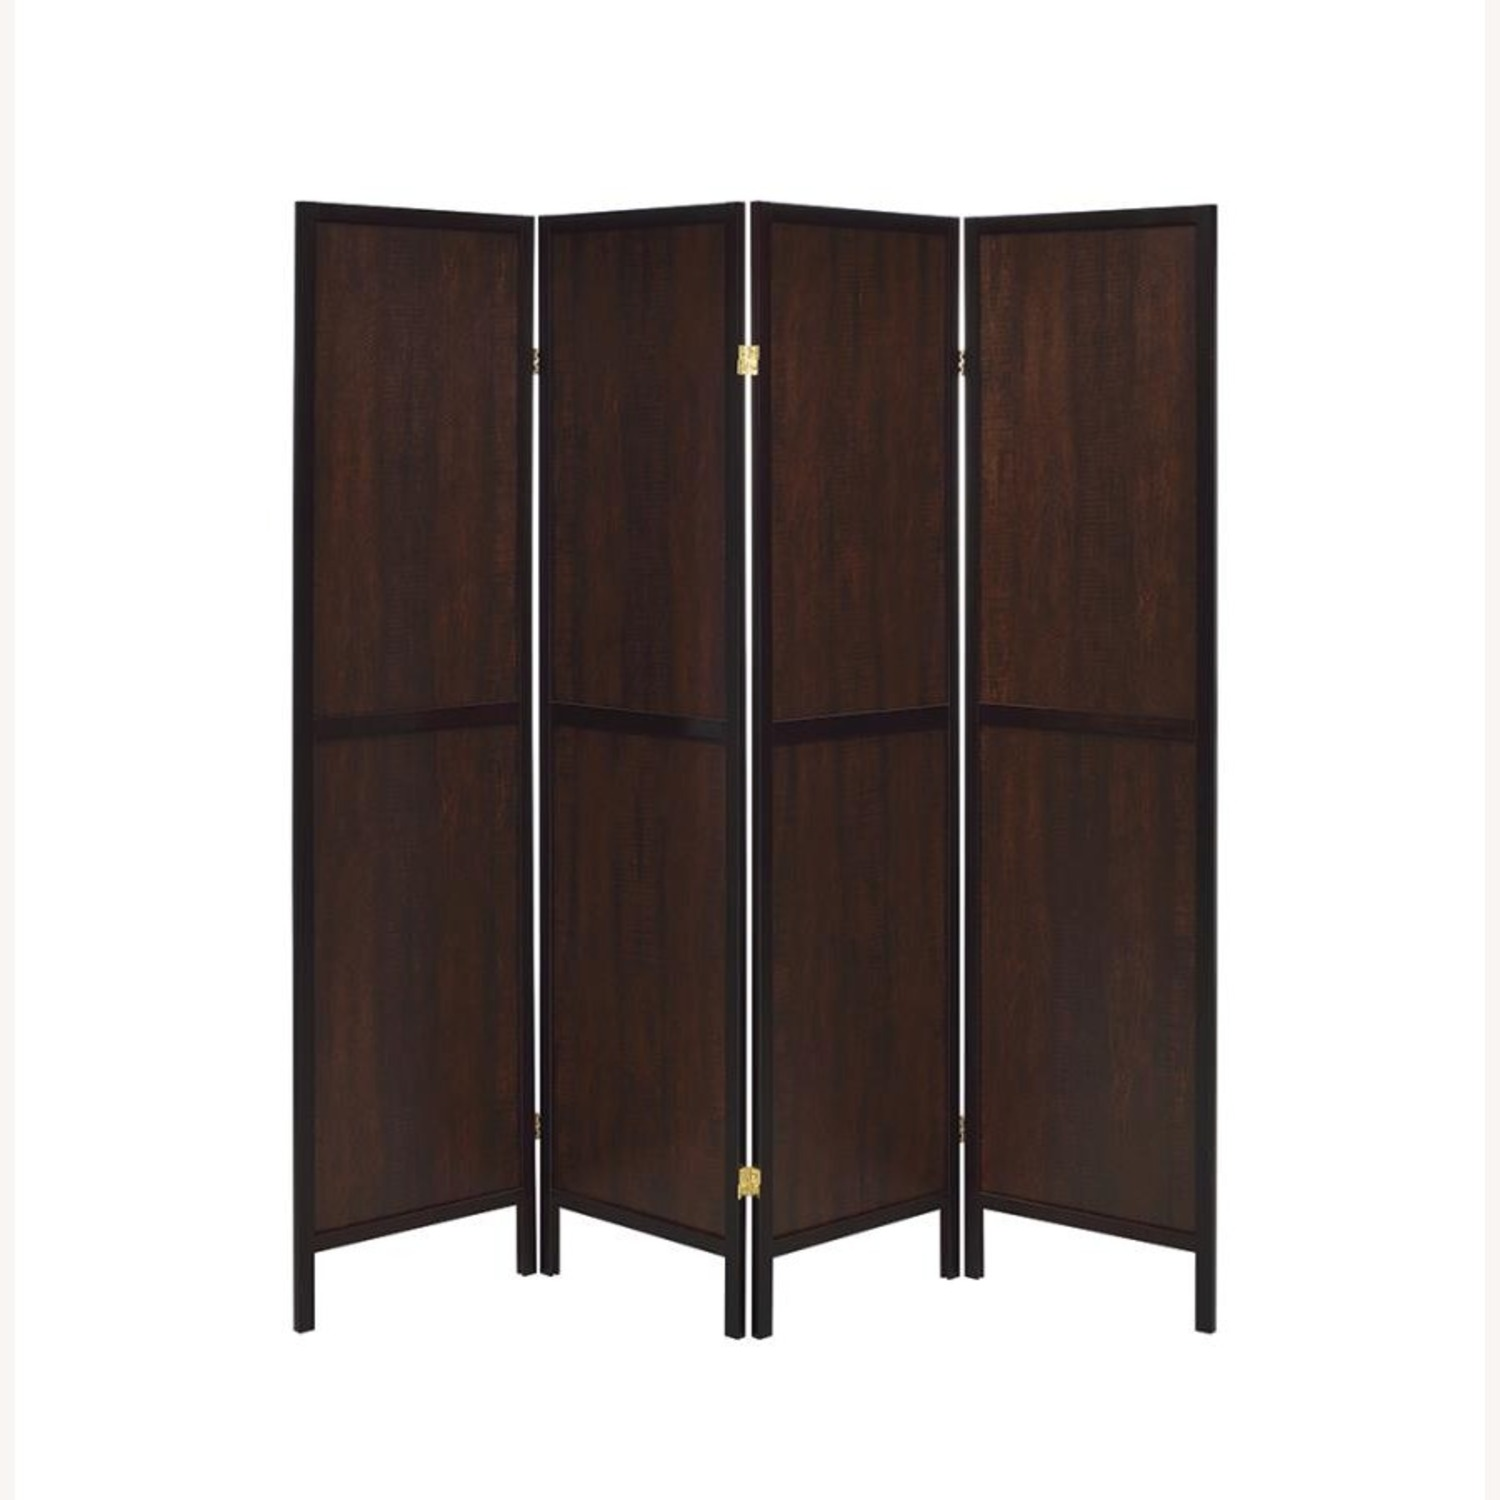 Panel Screen In Tobacco Finish & Cappuccino Frame - image-1